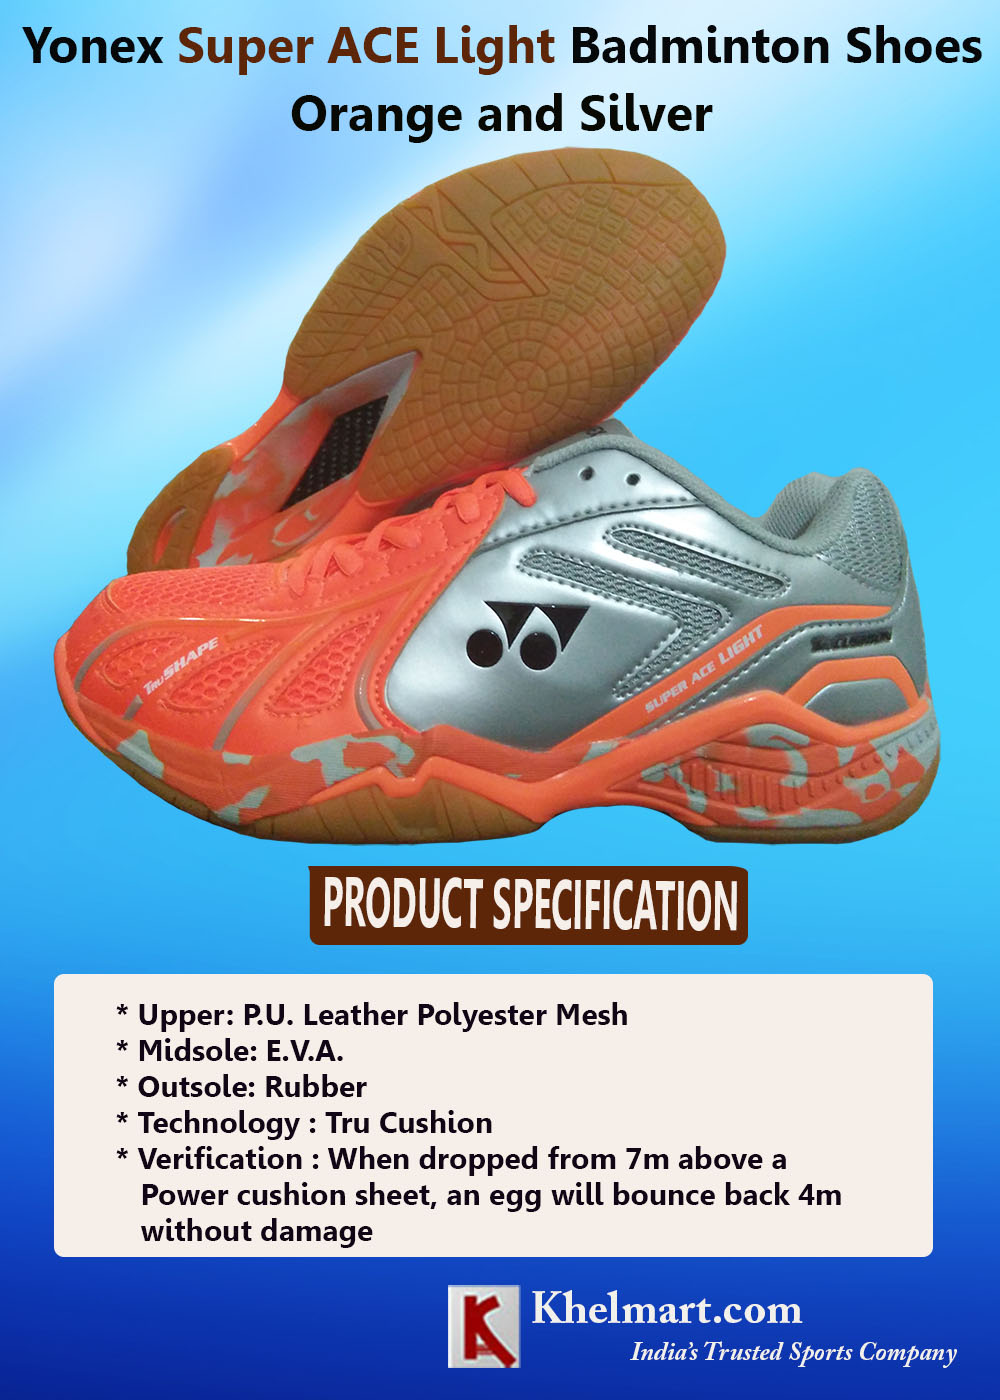 Yonex-Super-ACE-Light-Badminton-Shoes-Orange-and-Silver.jpg